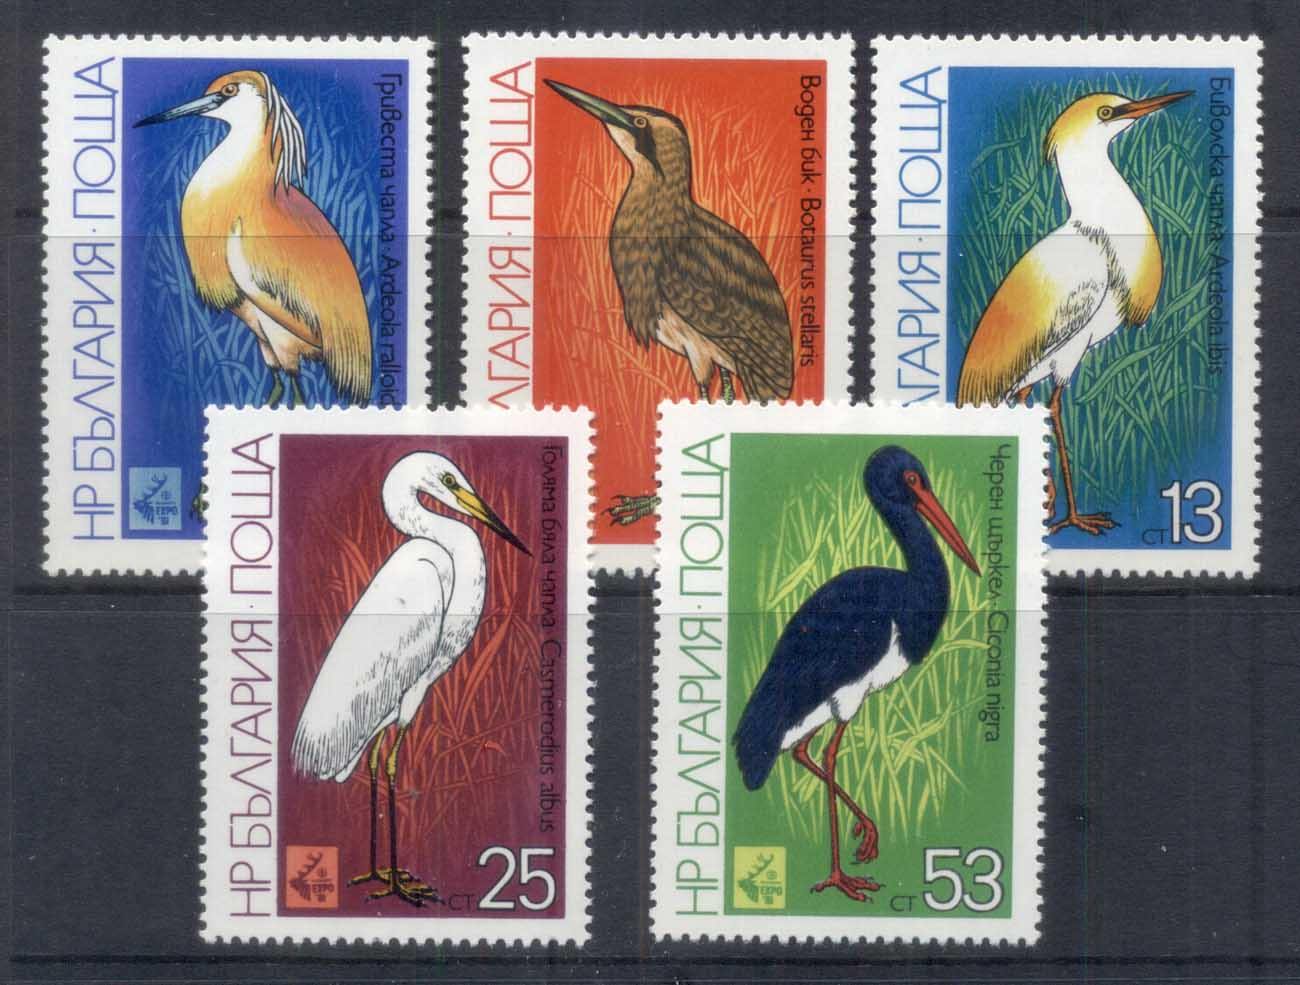 Bulgaria 1981 Birds MUH